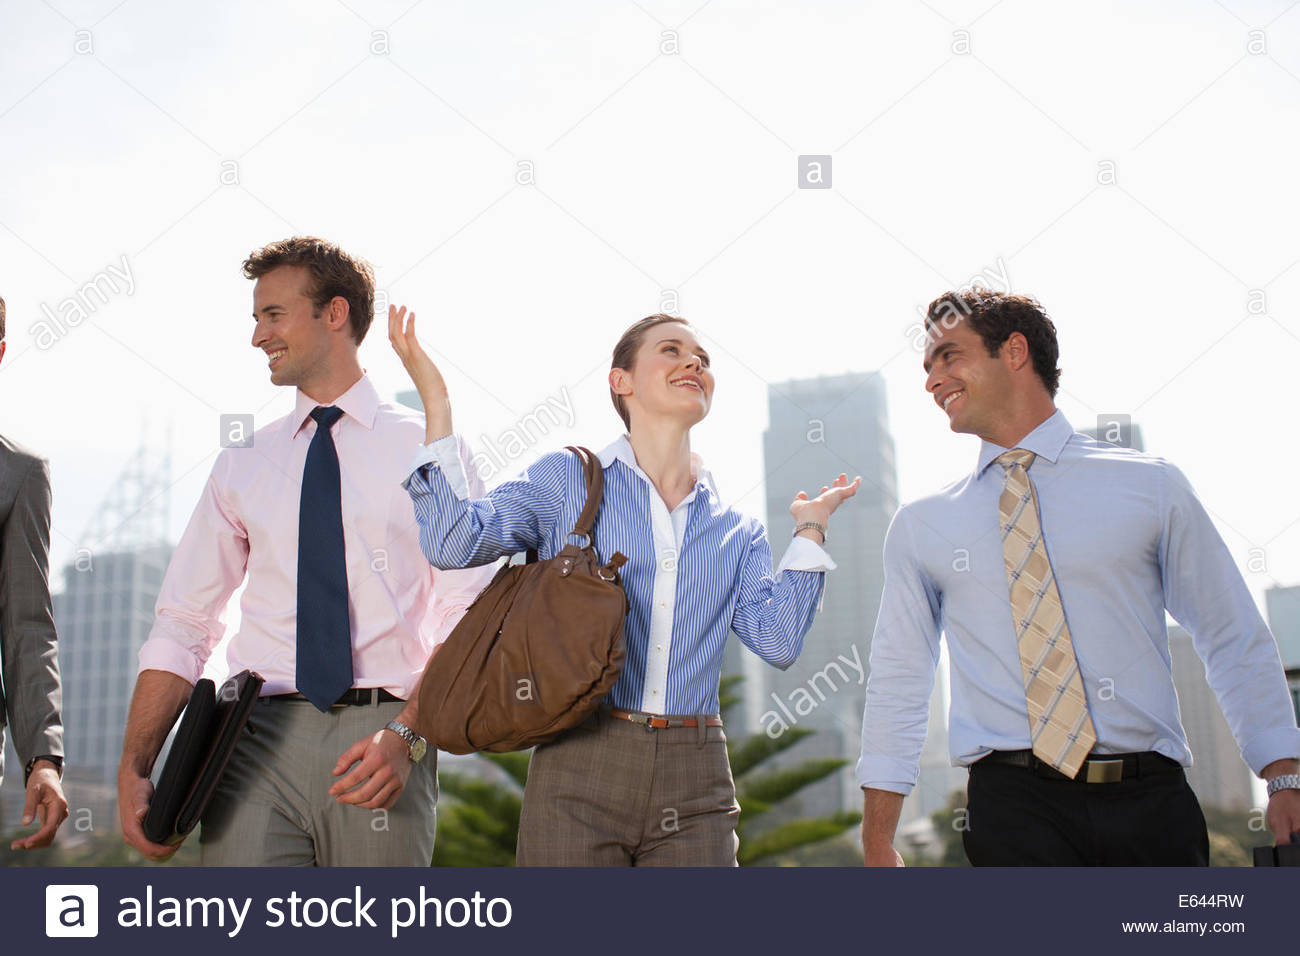 Business people walking together outdoors - Stock Image